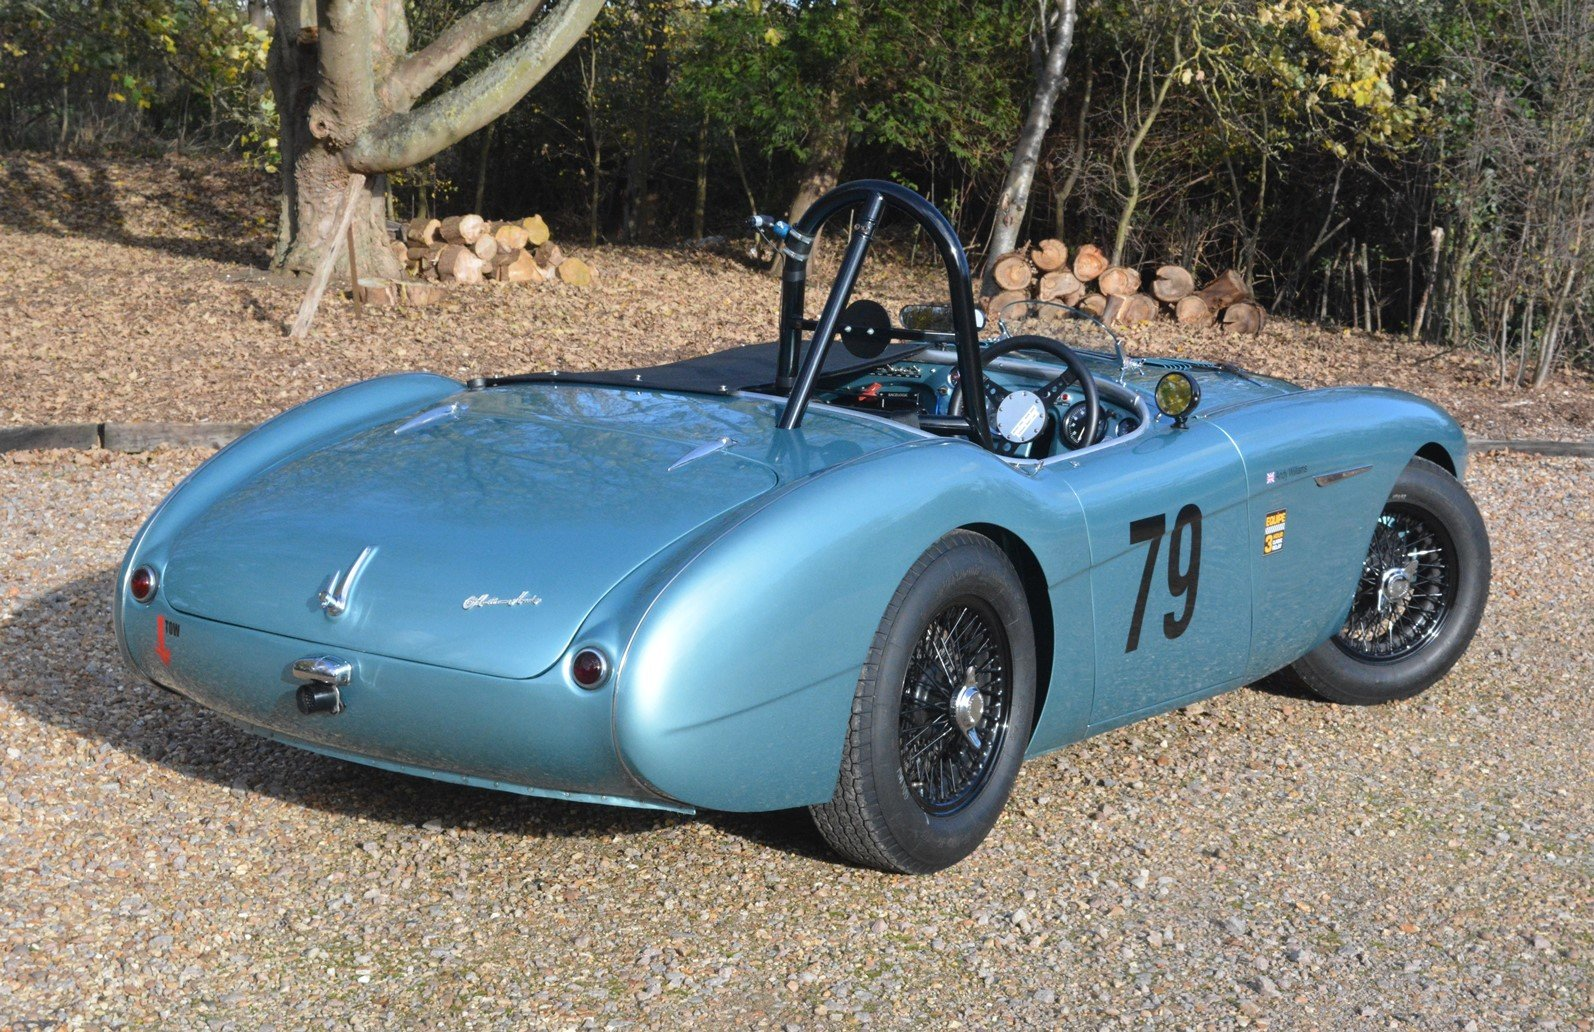 1956 Immaculate Austin Healey 100 Race Car For Sale (picture 2 of 6)